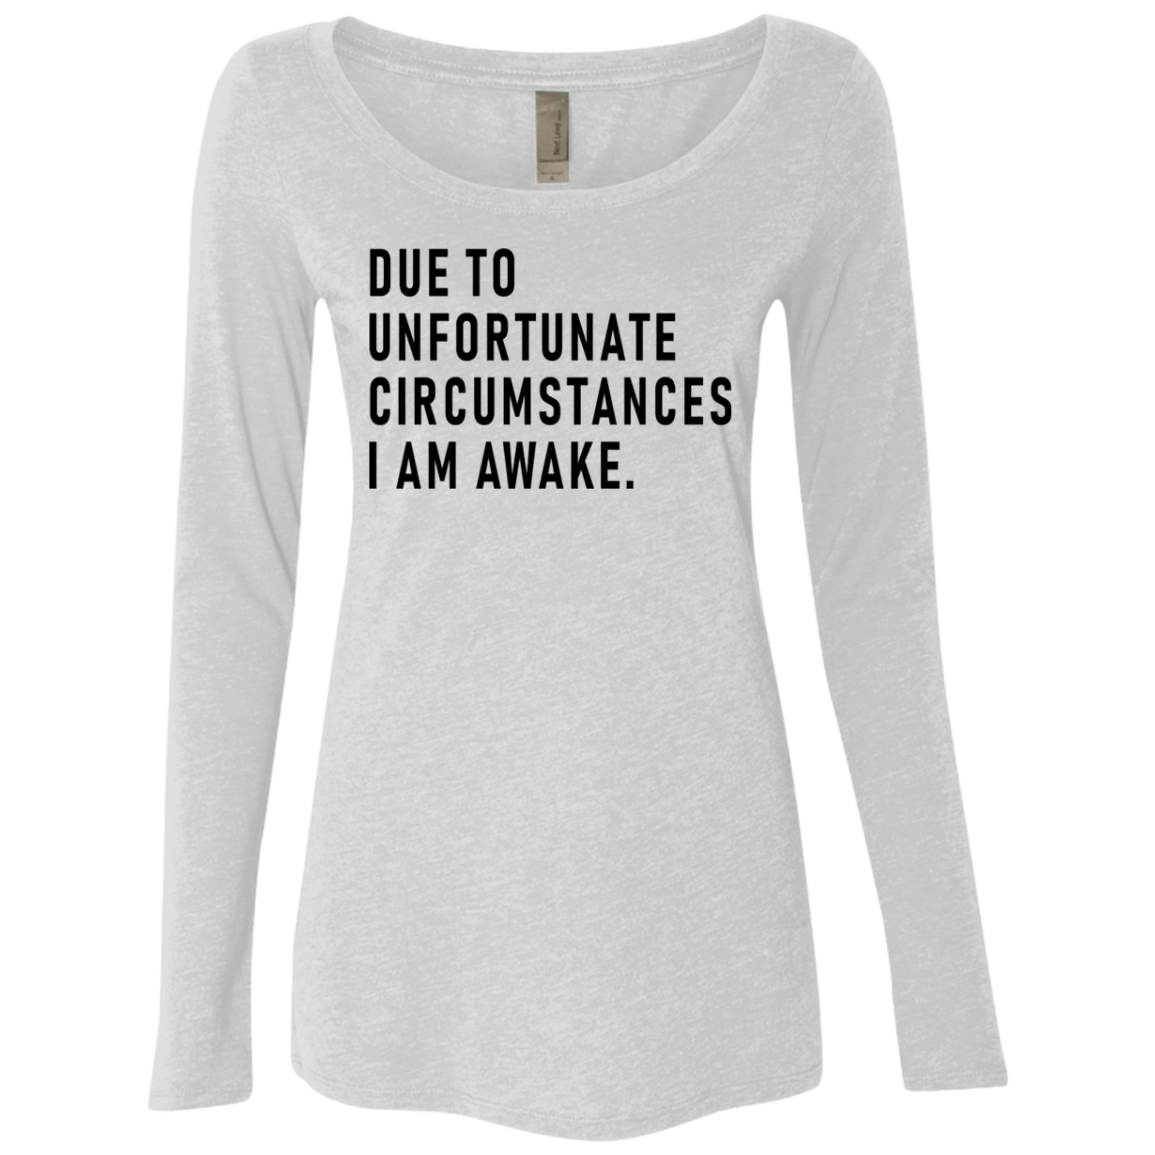 Due To Unfortunate Circumstances I Am Awake Women's Long Sleeve Tee